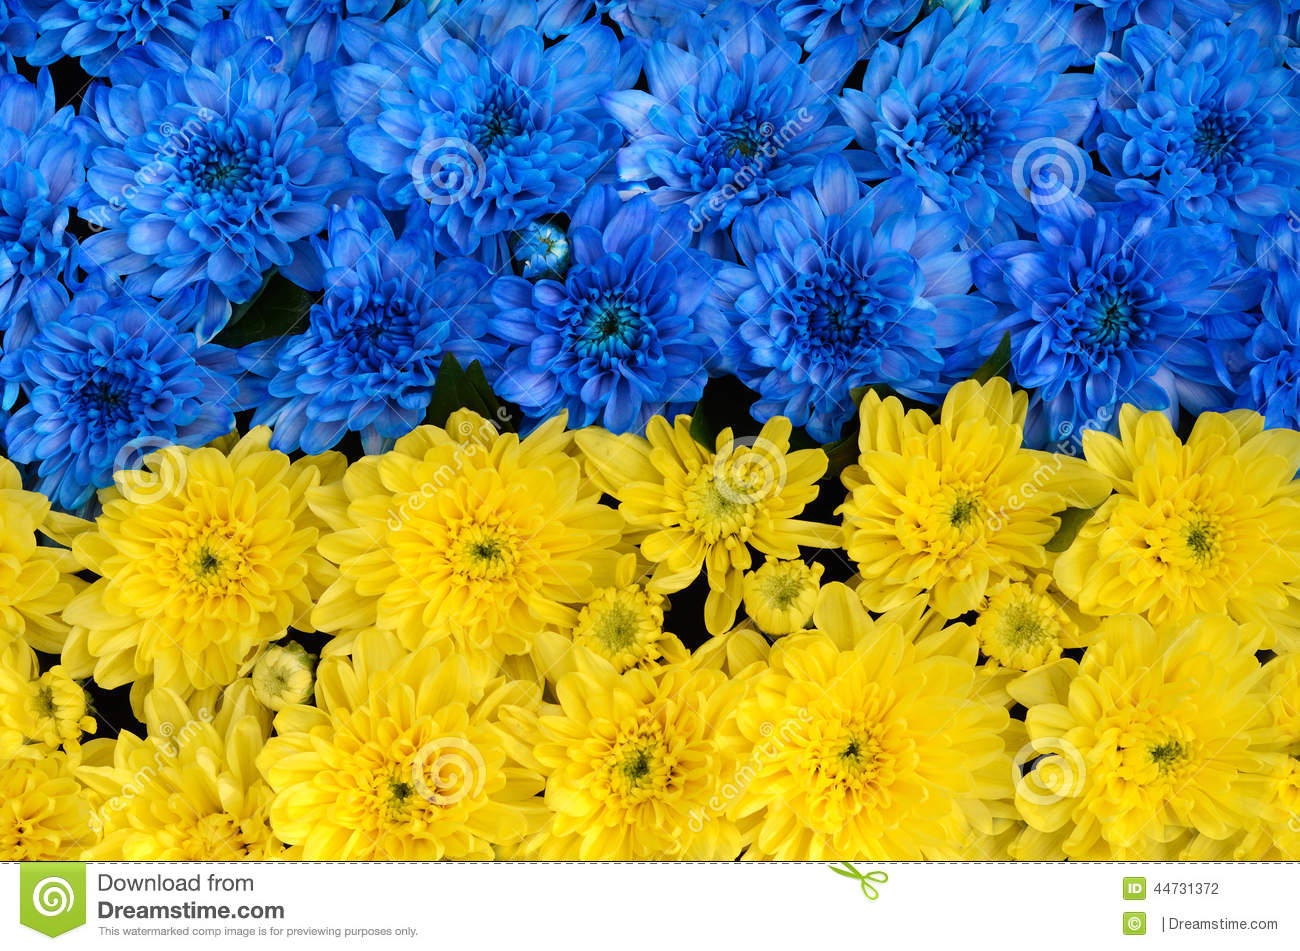 Blue and yellow stripes with colored flowers ukraine flag the download blue and yellow stripes with colored flowers ukraine flag the stock photo mightylinksfo